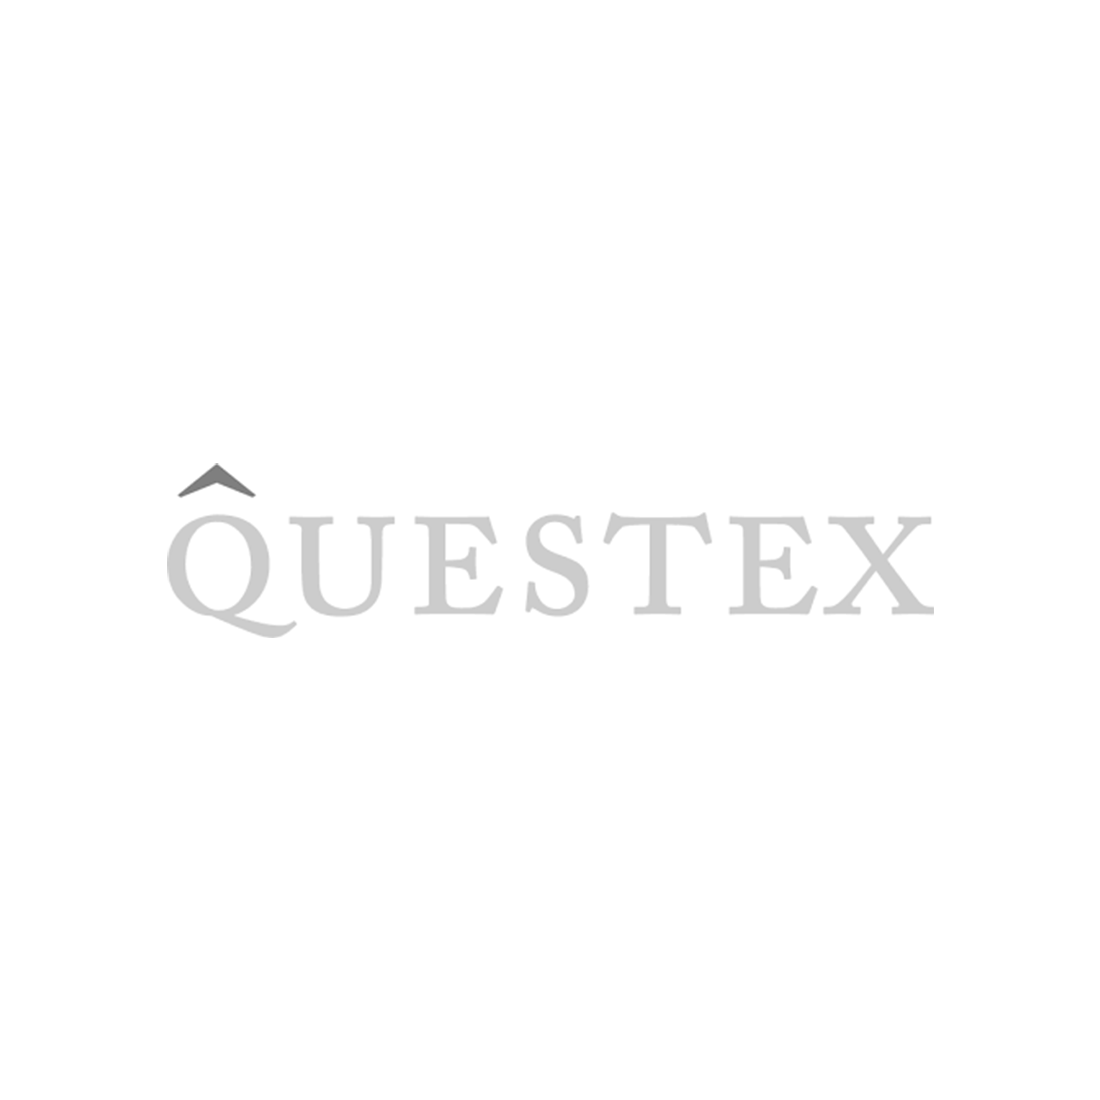 Questex Media Group